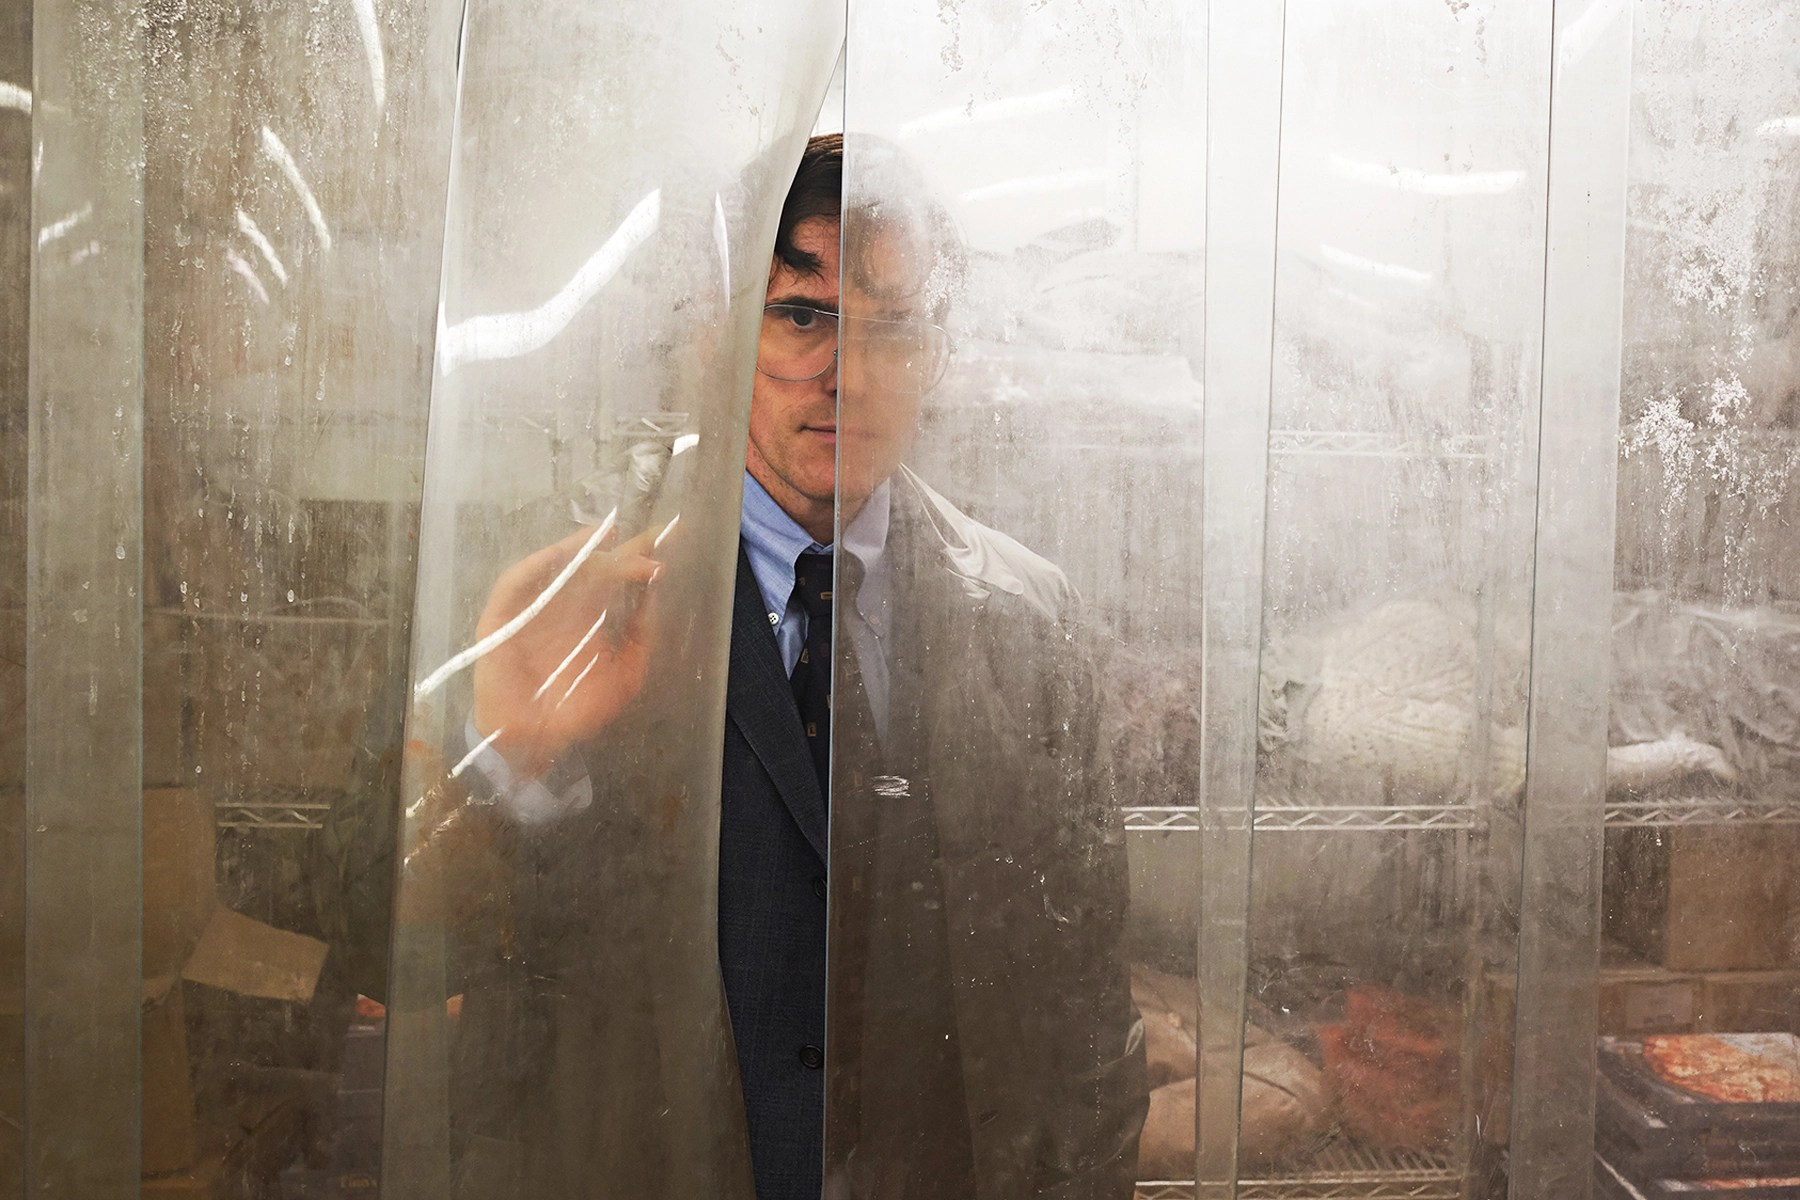 'The House That Jack Built': Von Trier's Serial-Killer Movie Is D.O.A. – Rolling Stone